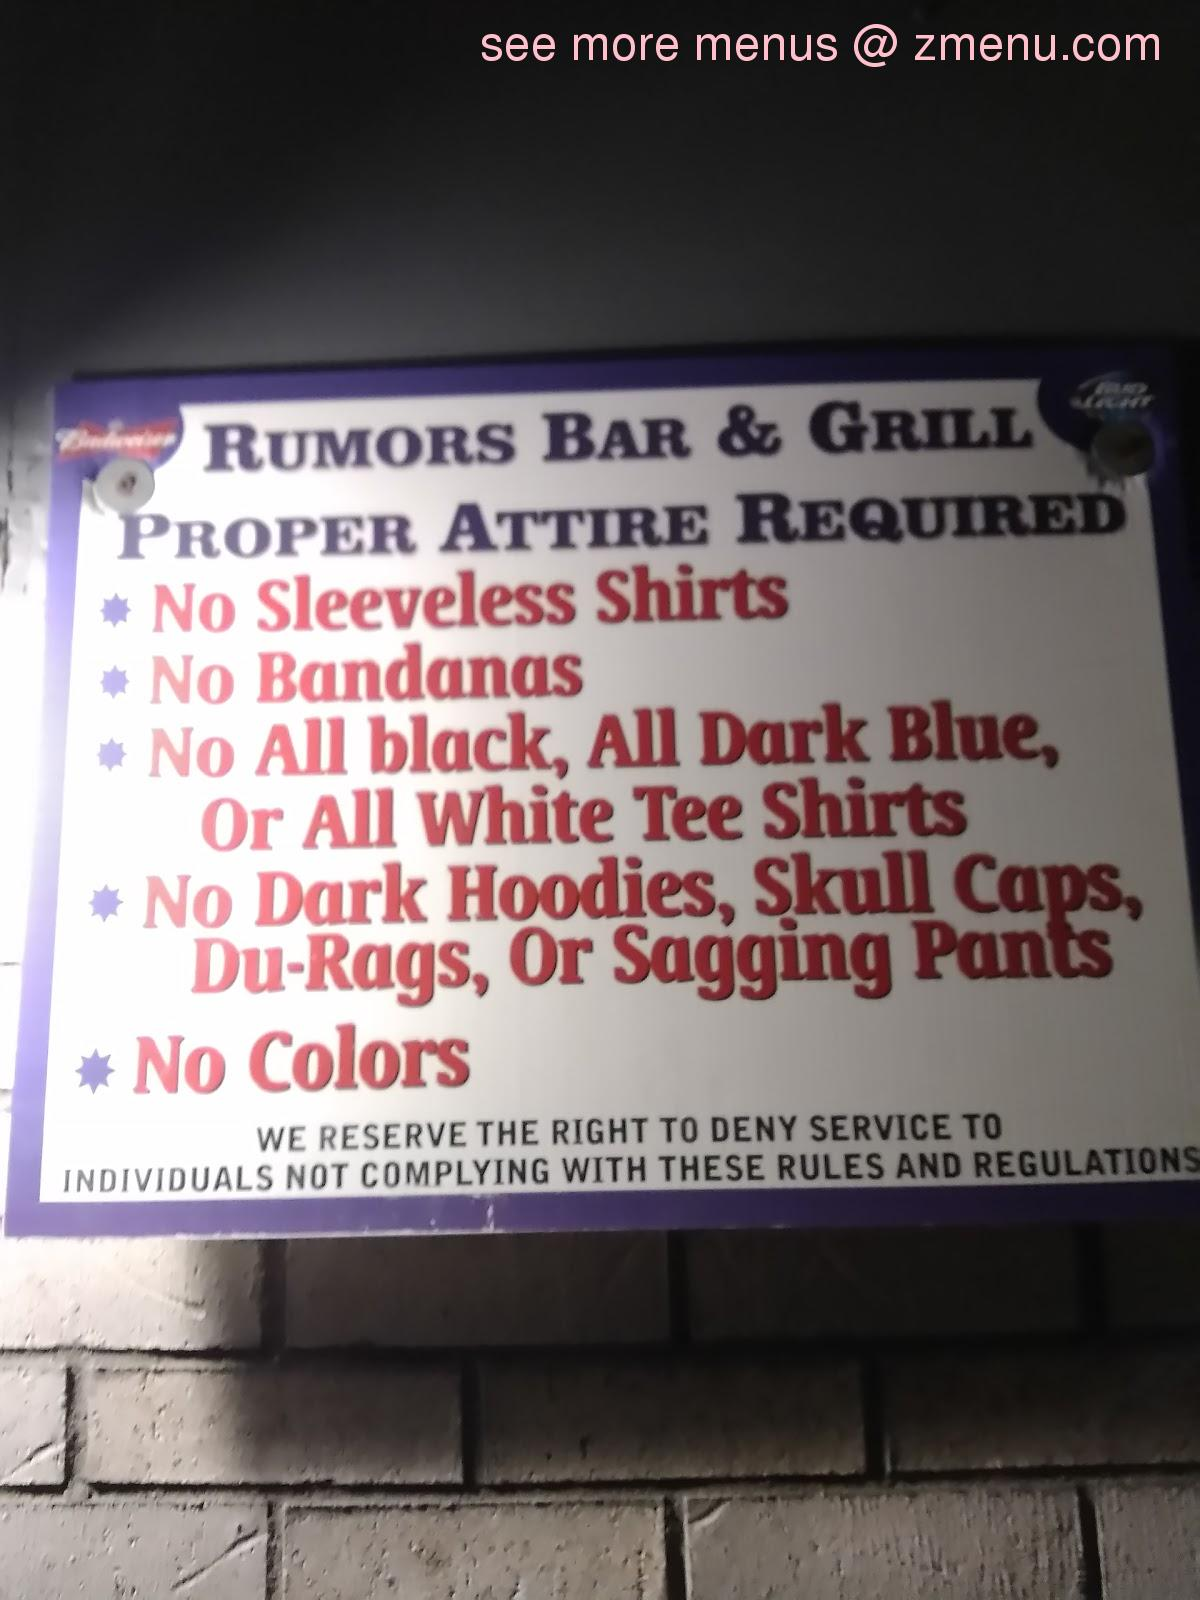 Rumors Bar And Grill >> Online Menu Of Rumors Bar Grille Restaurant Clementon New Jersey